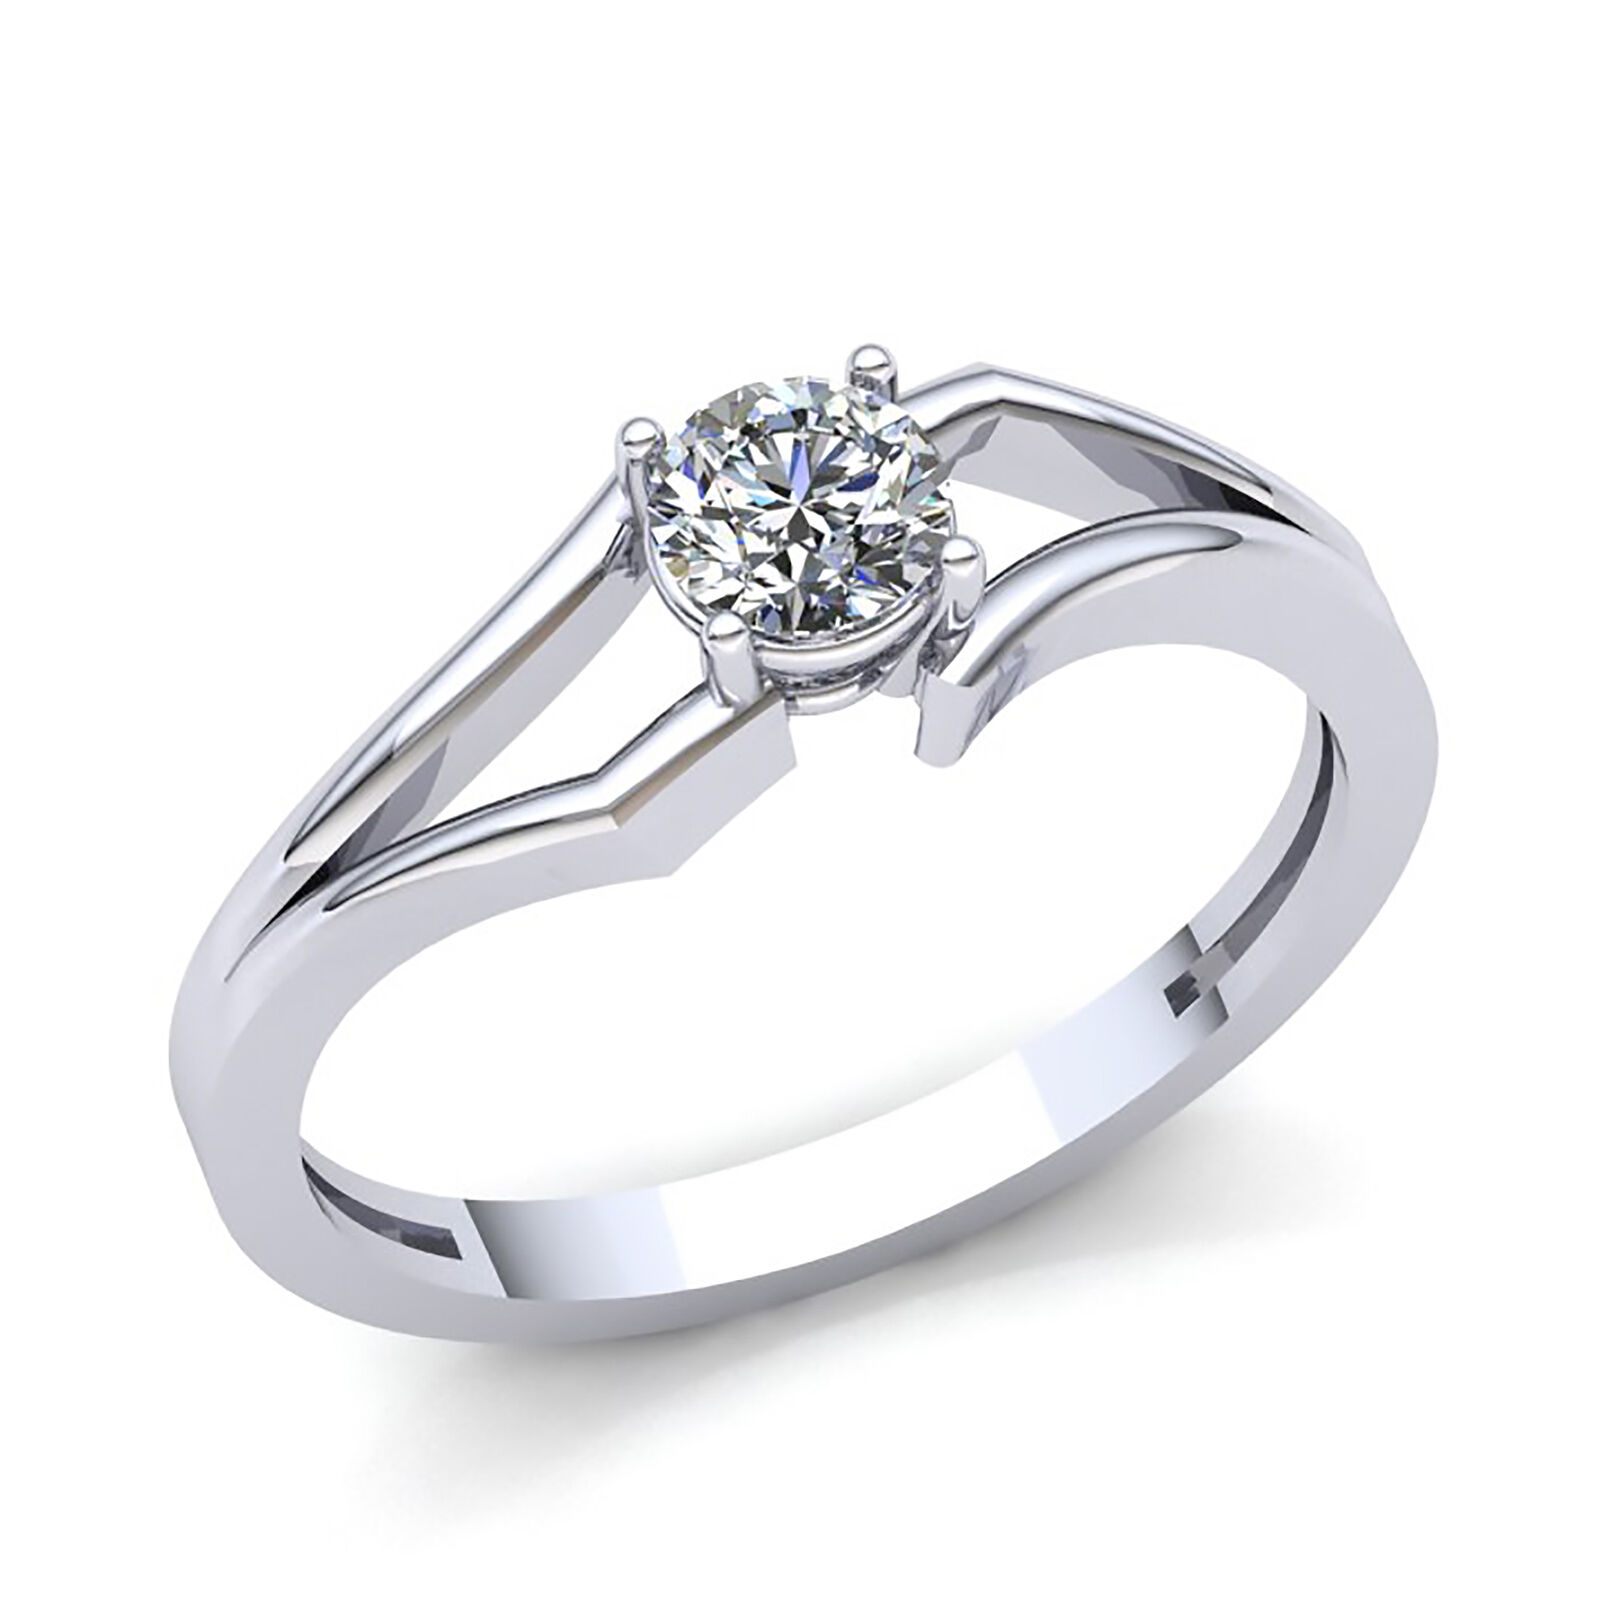 Real 0.5carat Round Cut Diamond Ladies Solitaire Engagement Ring 14K gold GH SI2